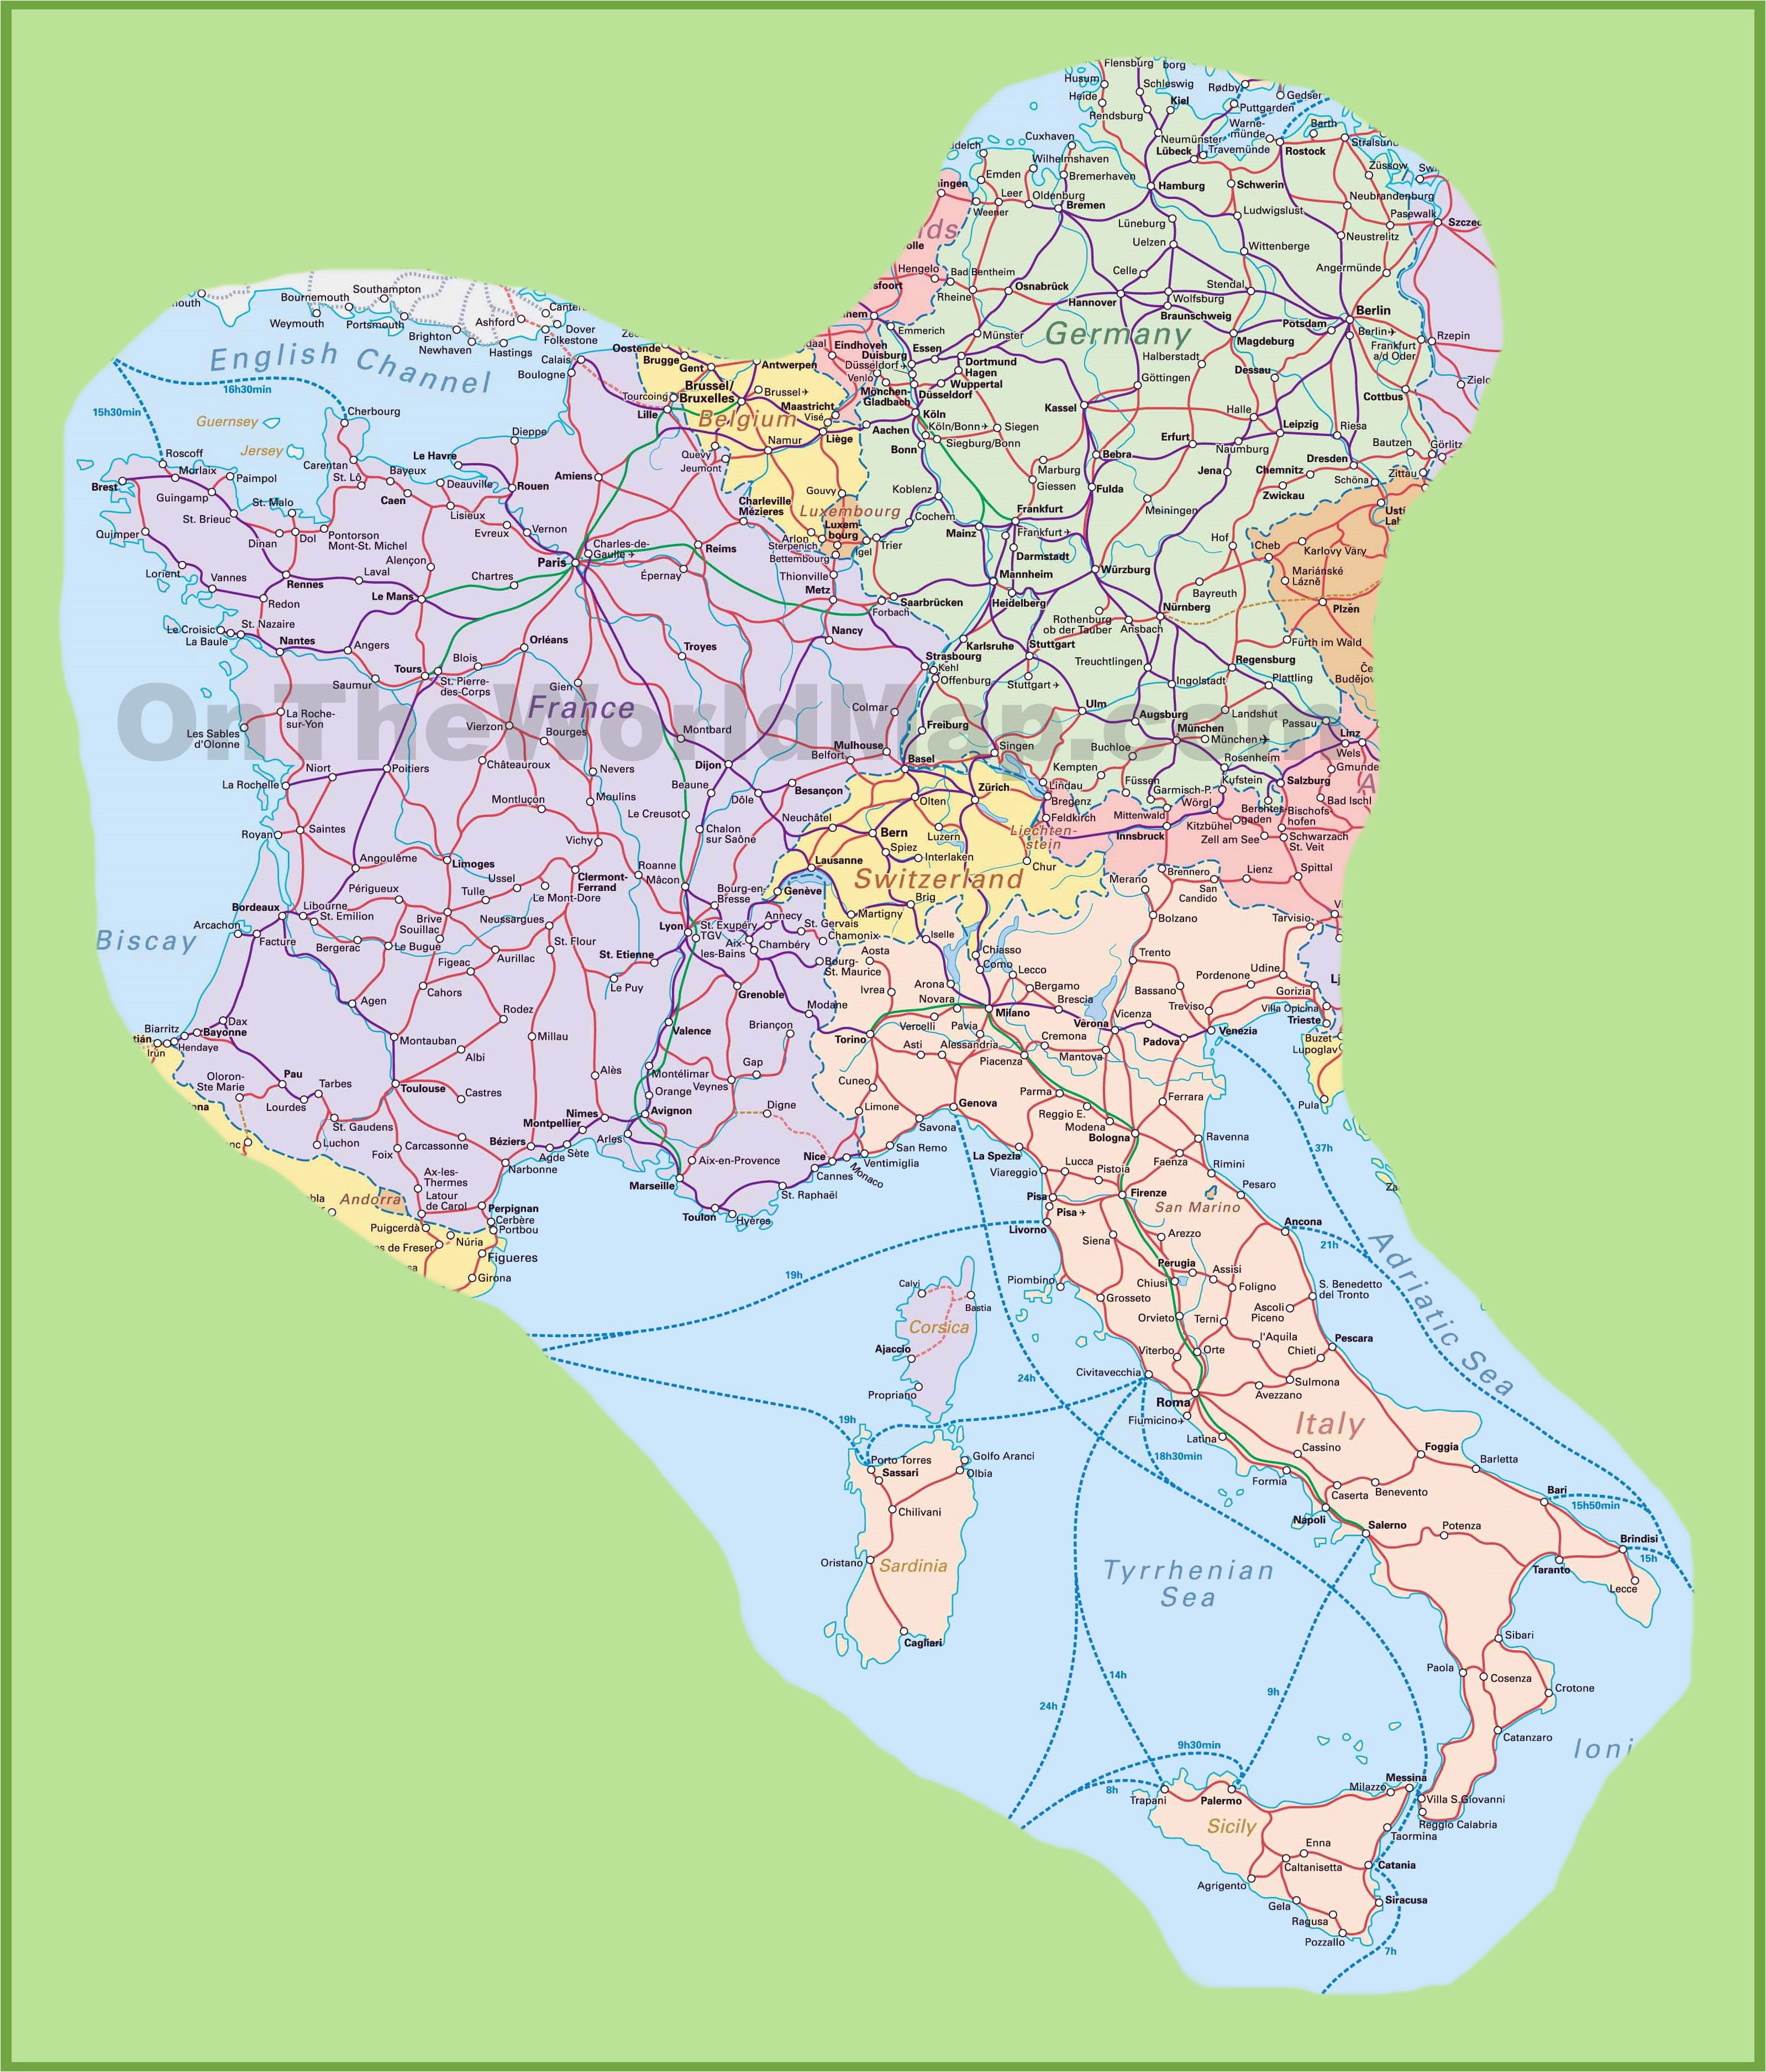 Map Of Europe Showing Italy.Map Of Europe Showing Italy Map Of Switzerland Italy Germany And